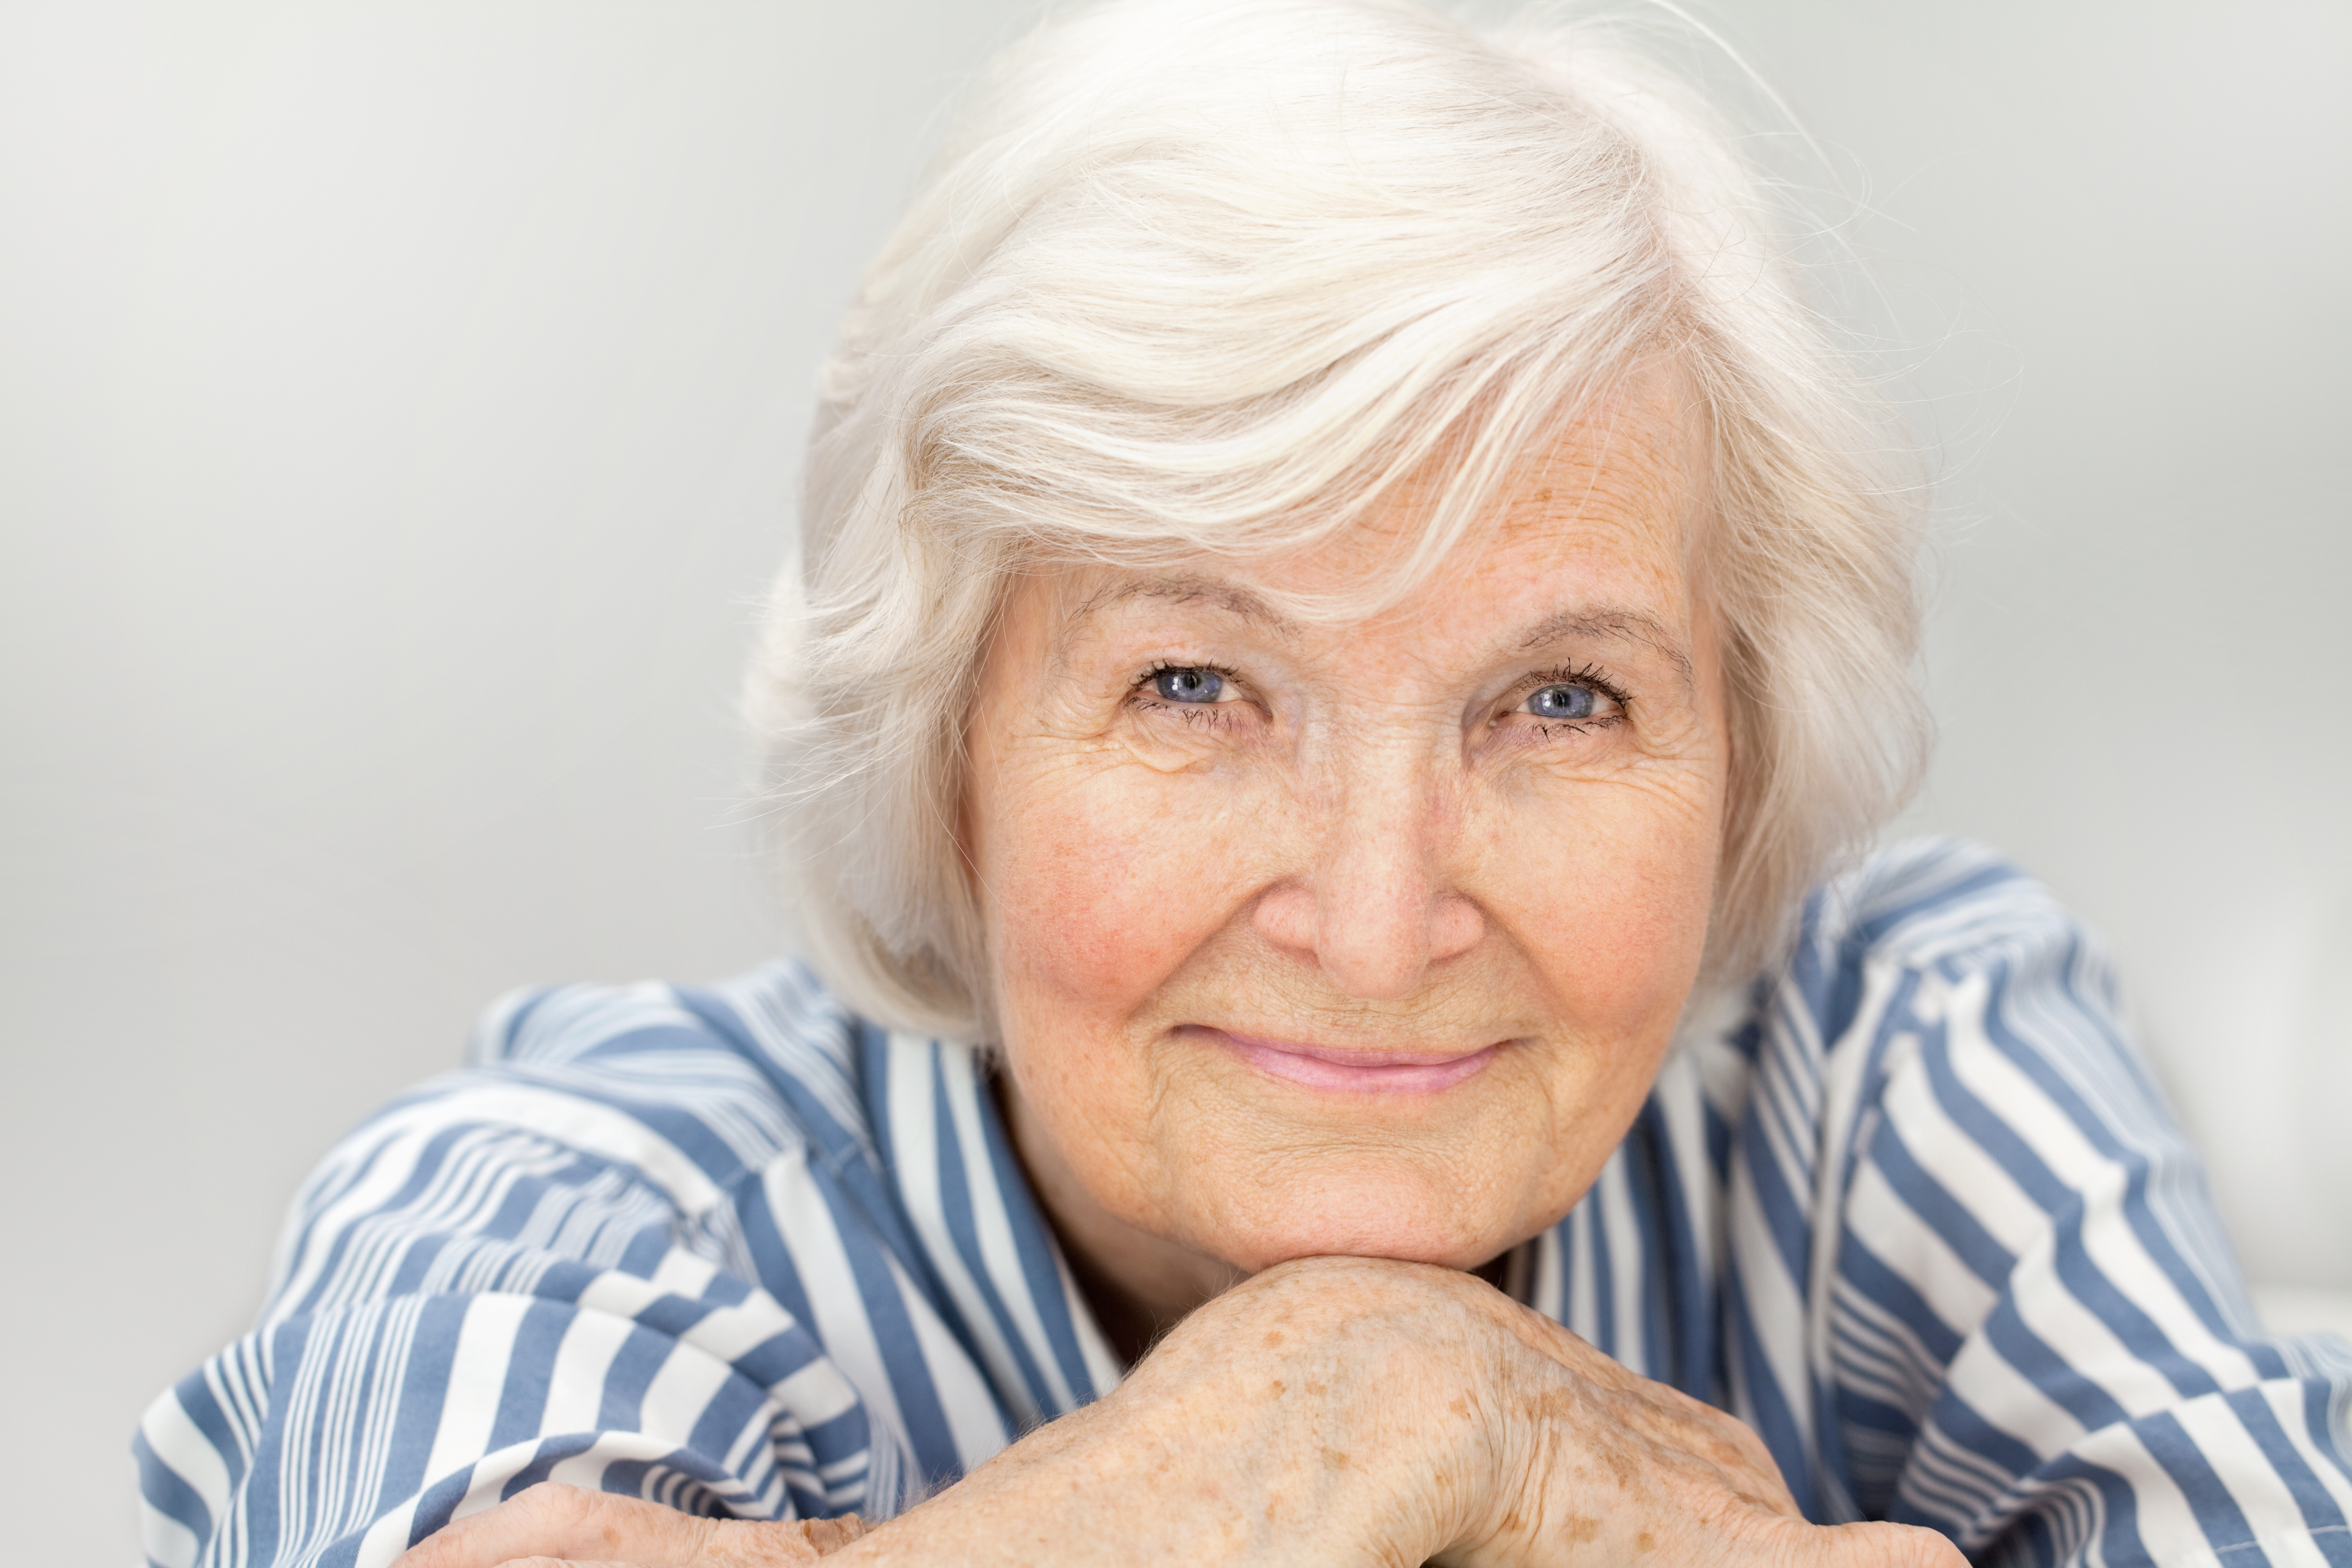 Best Strength Training Routines for Elderly: Top 5 Exercises